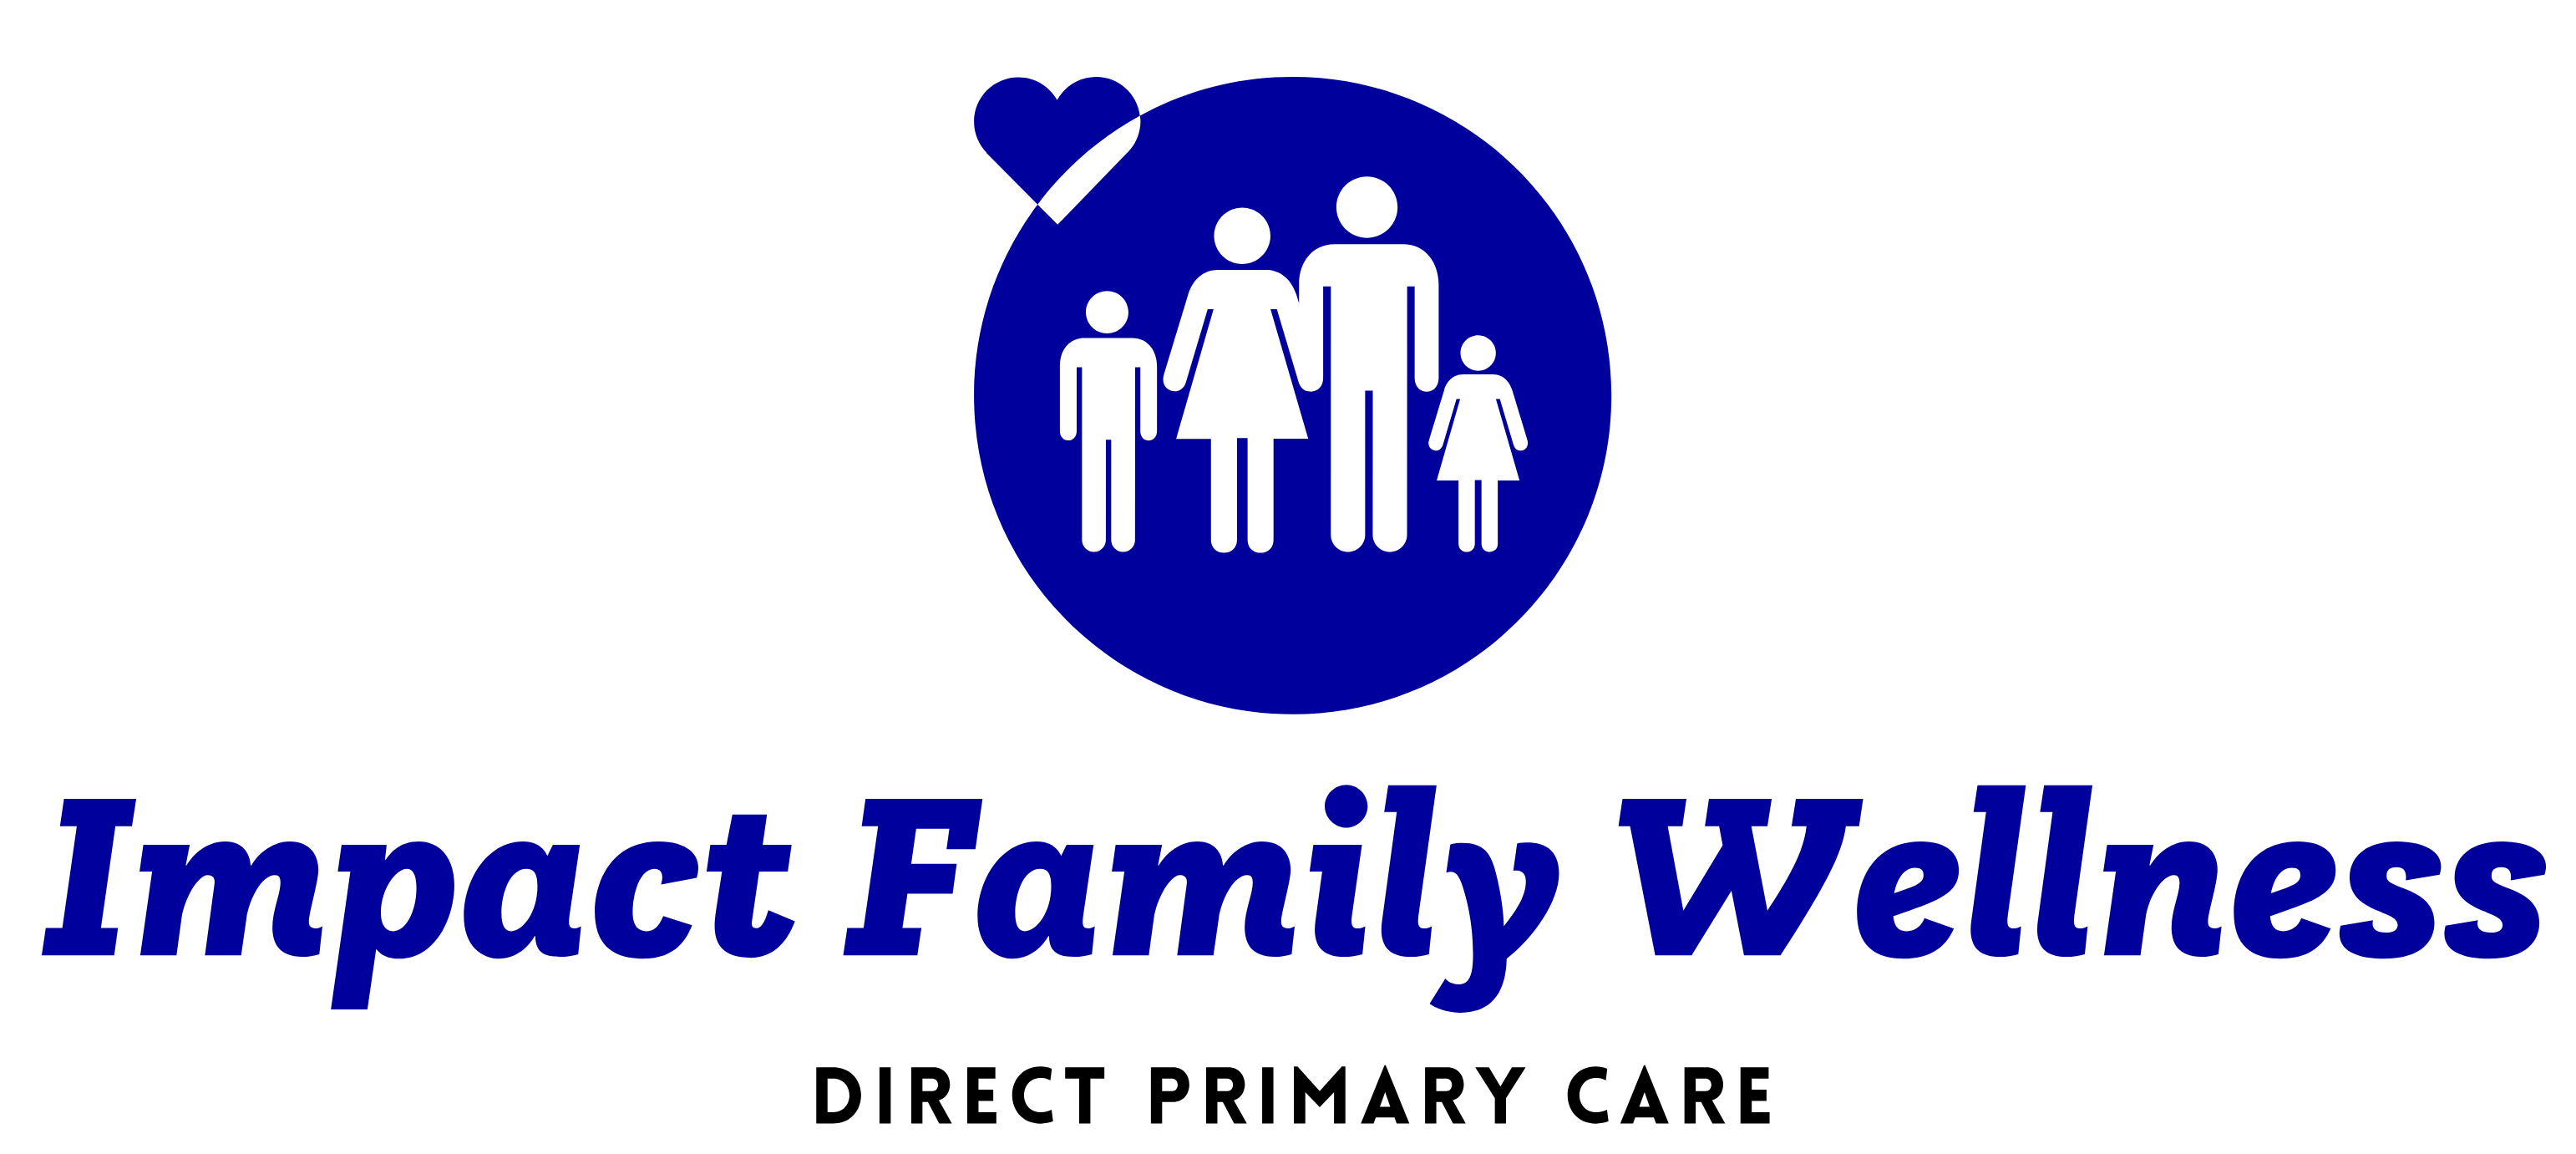 Impact-Family-Wellness.png